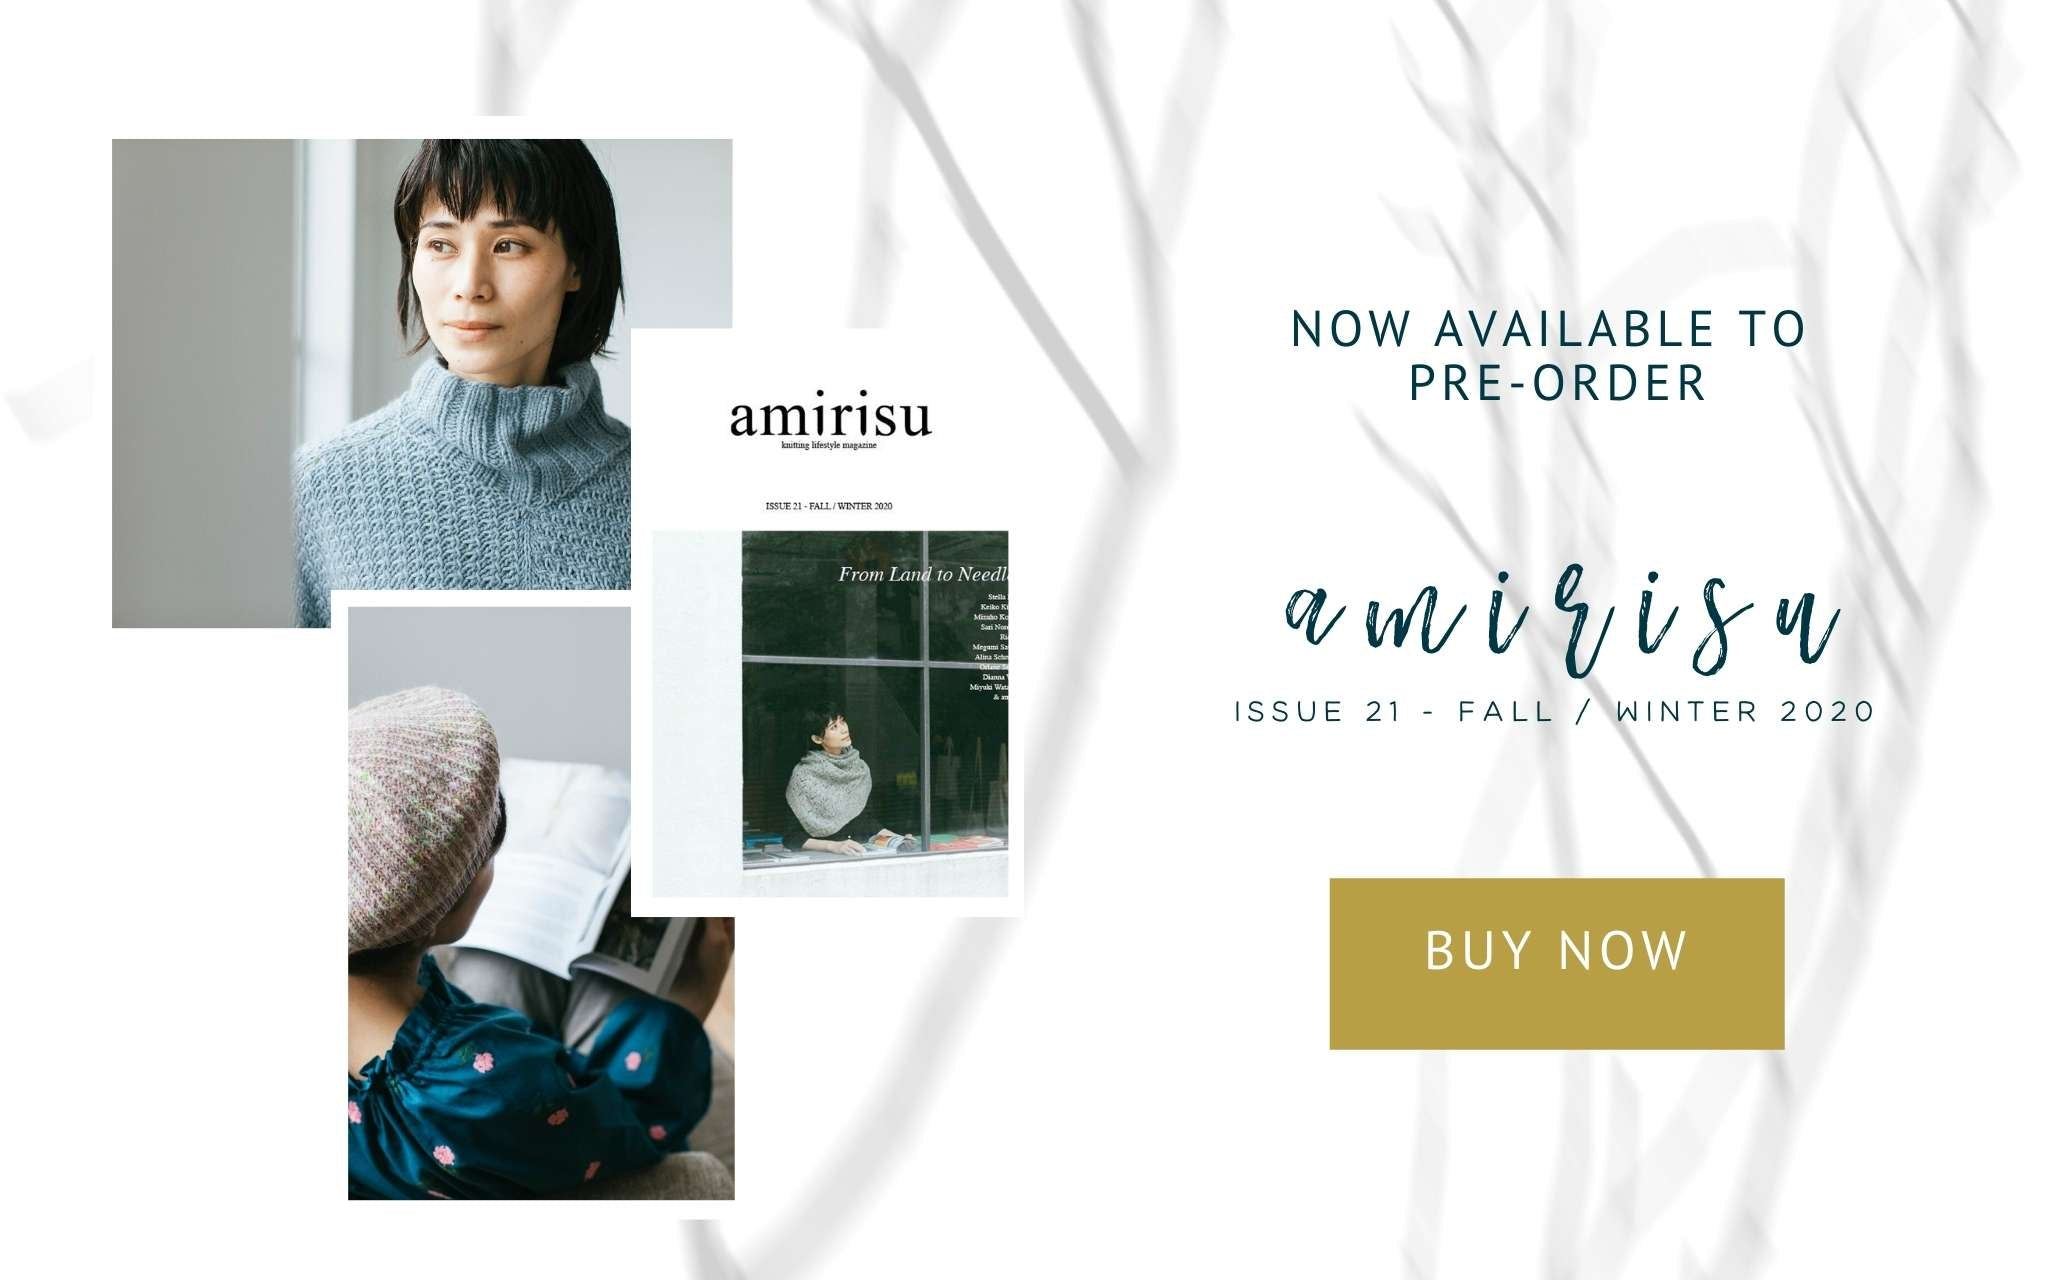 amirisu issue 21 - now available to pre-order